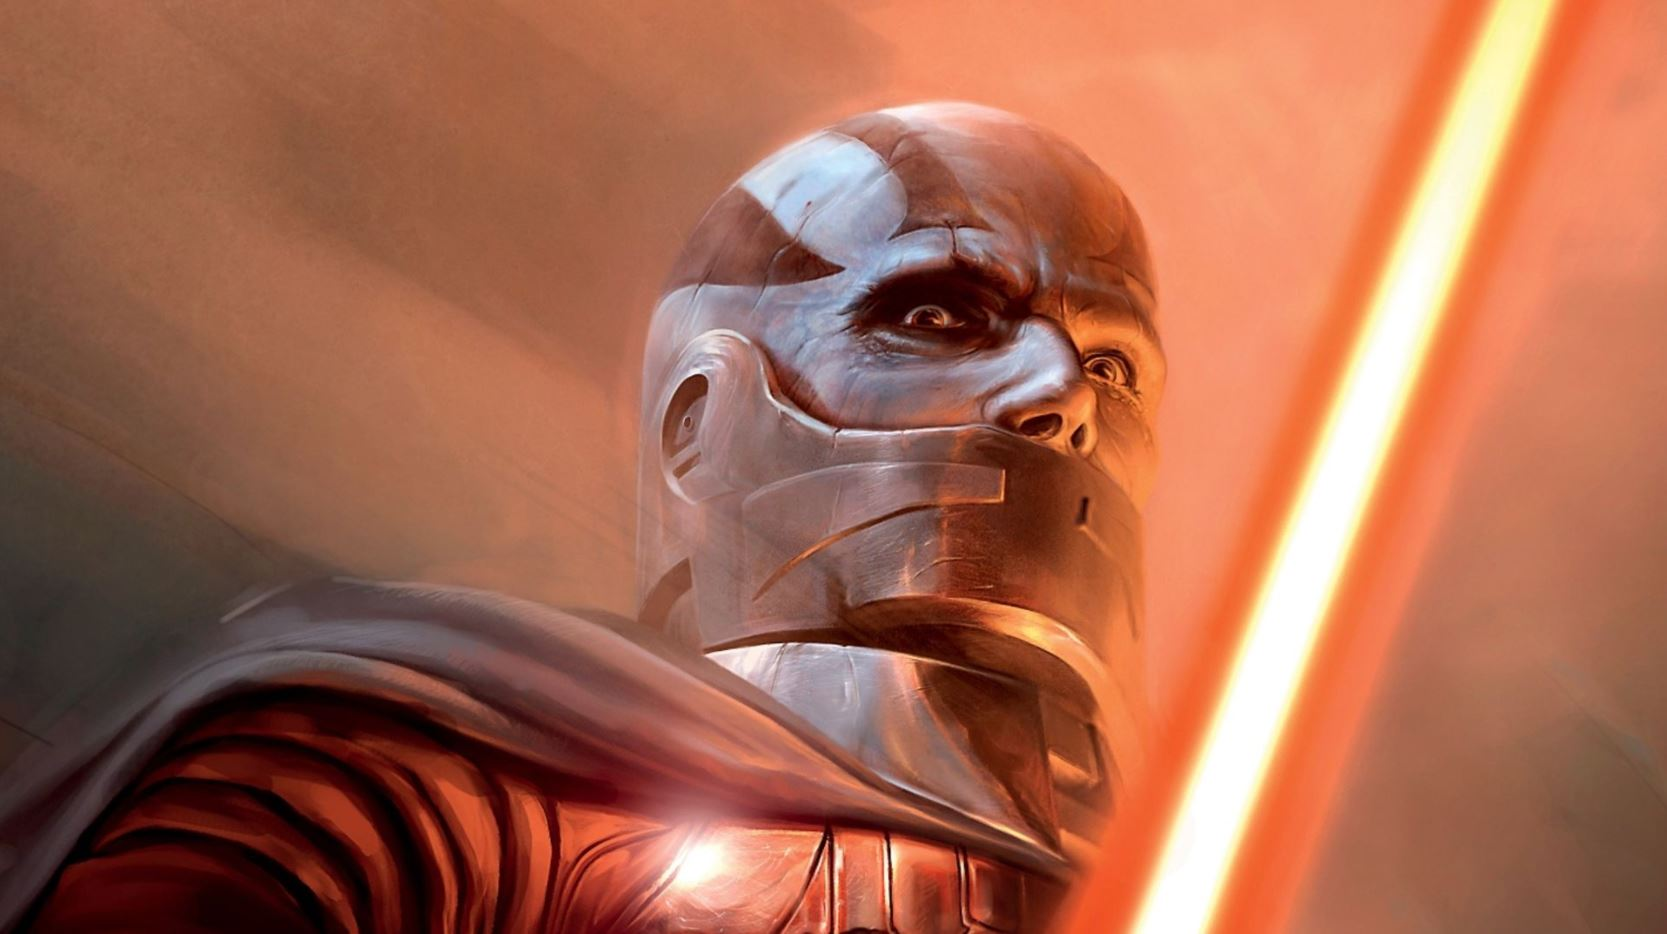 rumor-new-star-wars-knights-of-the-old-republic-game-in-the-works-not-developed-by-ea